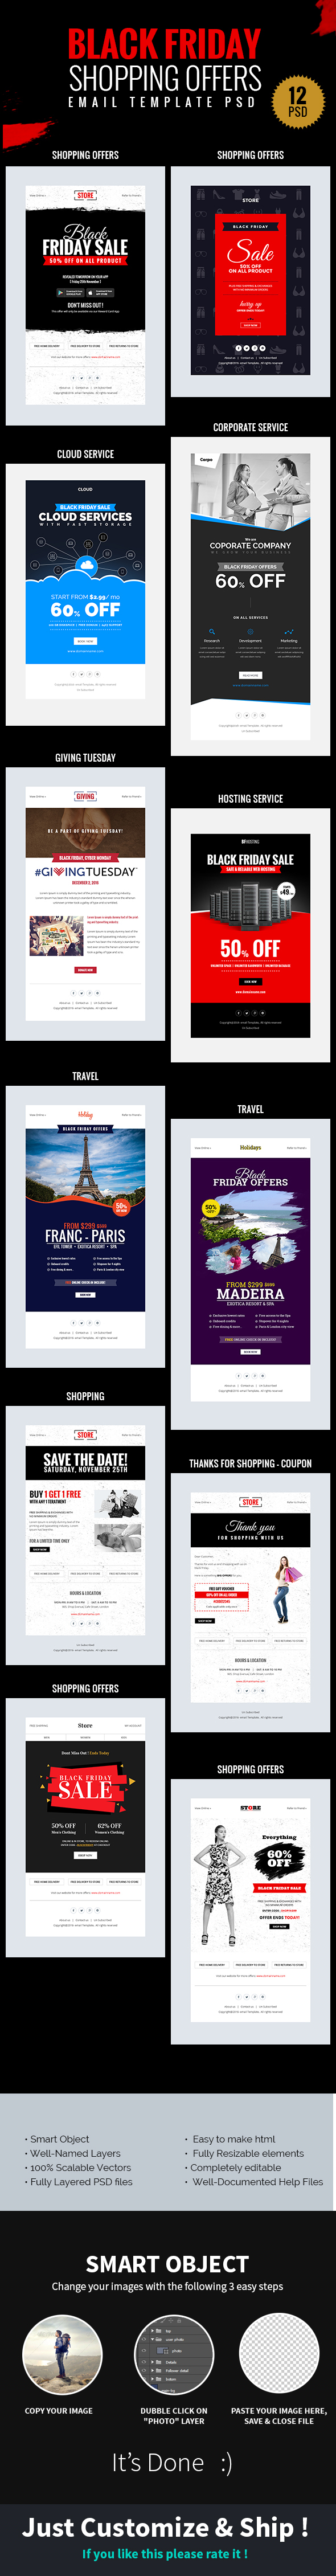 Black Friday Shopping Offers Email Template Psd On Behance